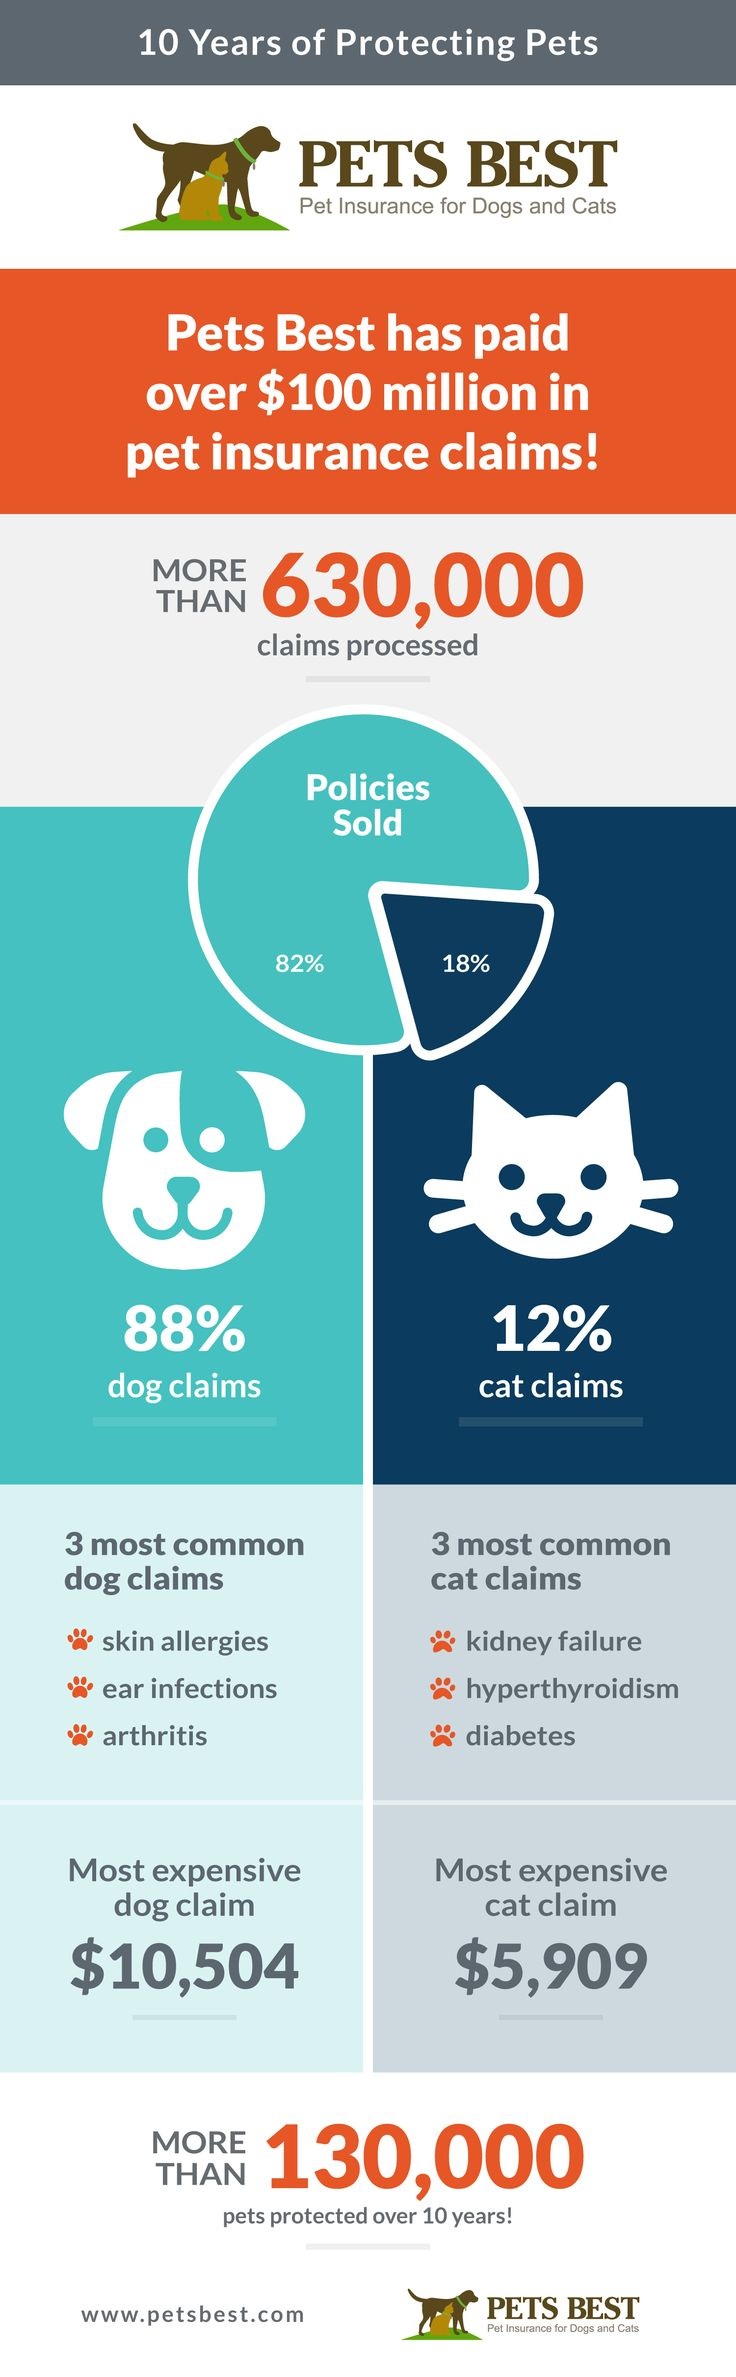 Pets Best pet health insurance pays out $100 million in claims!